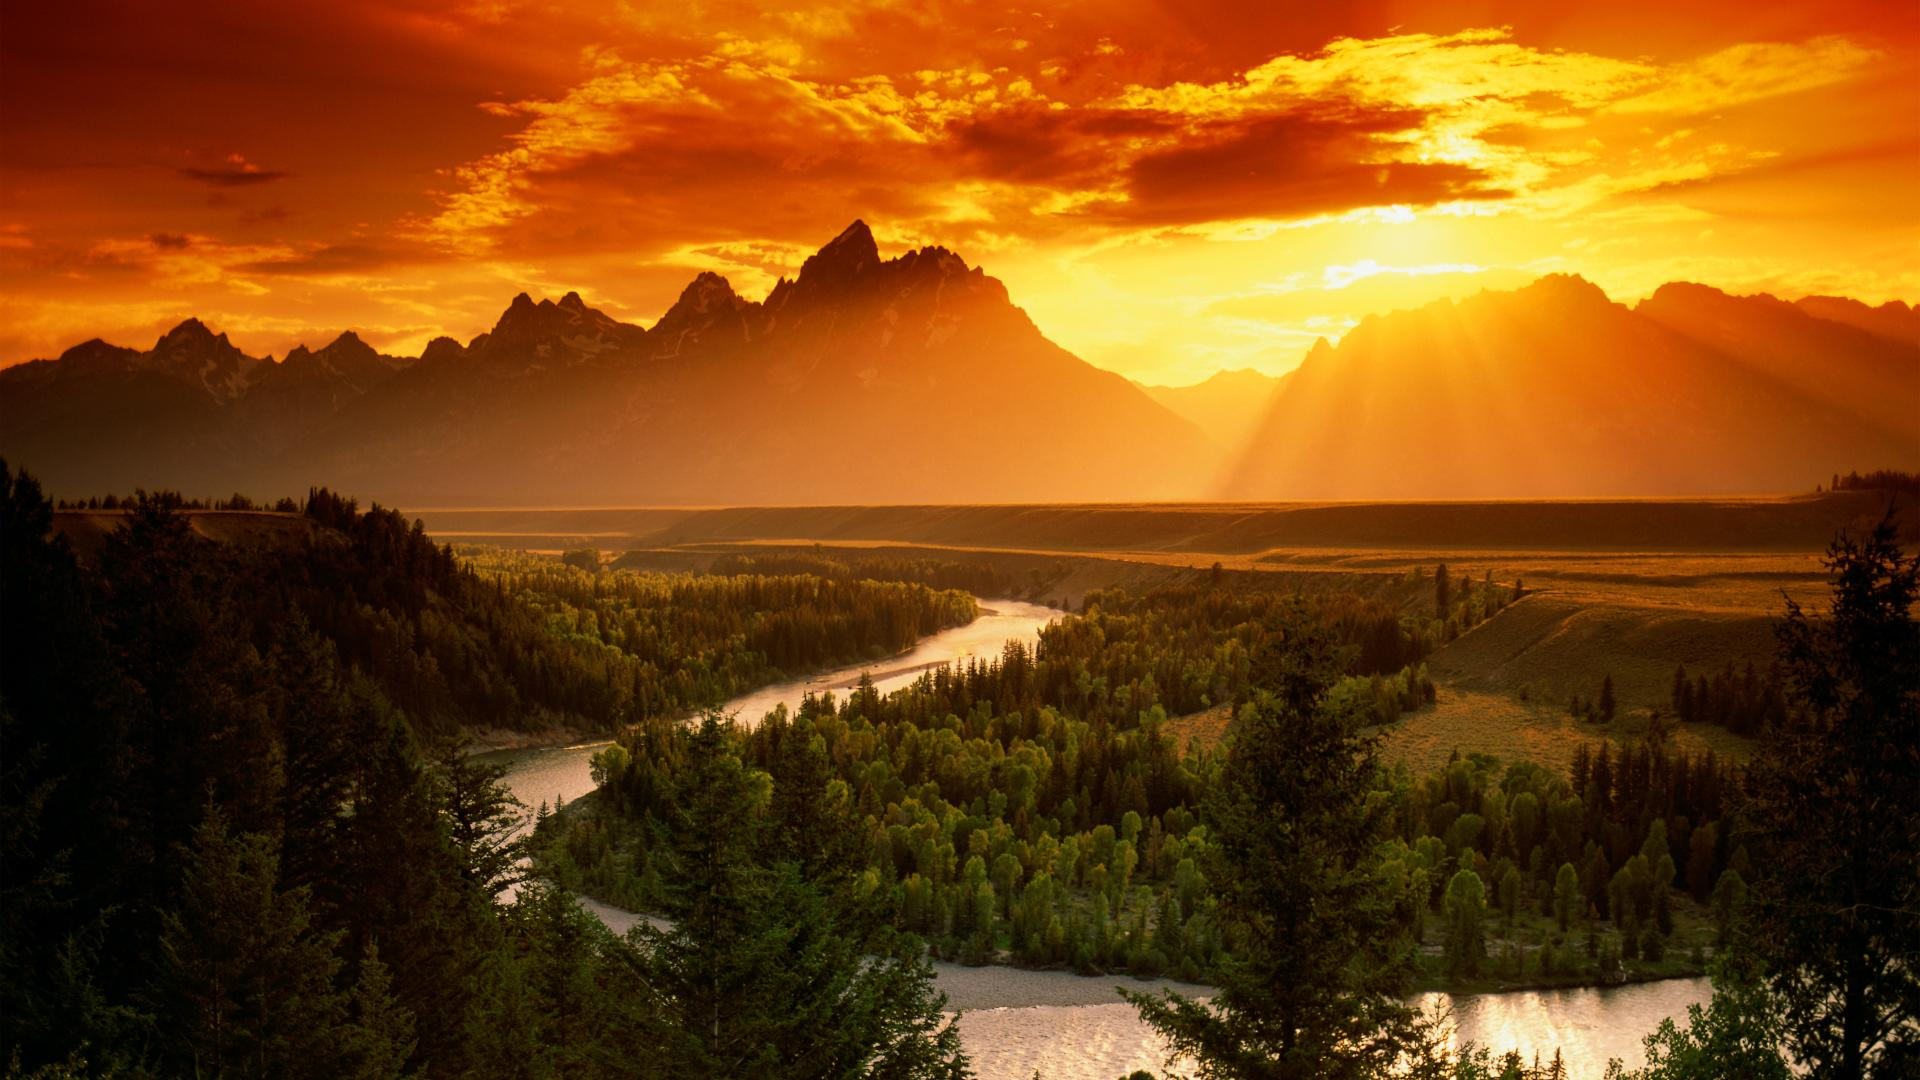 snake river wyoming rivergrand teton national park 1920x1080 166600 1920x1080